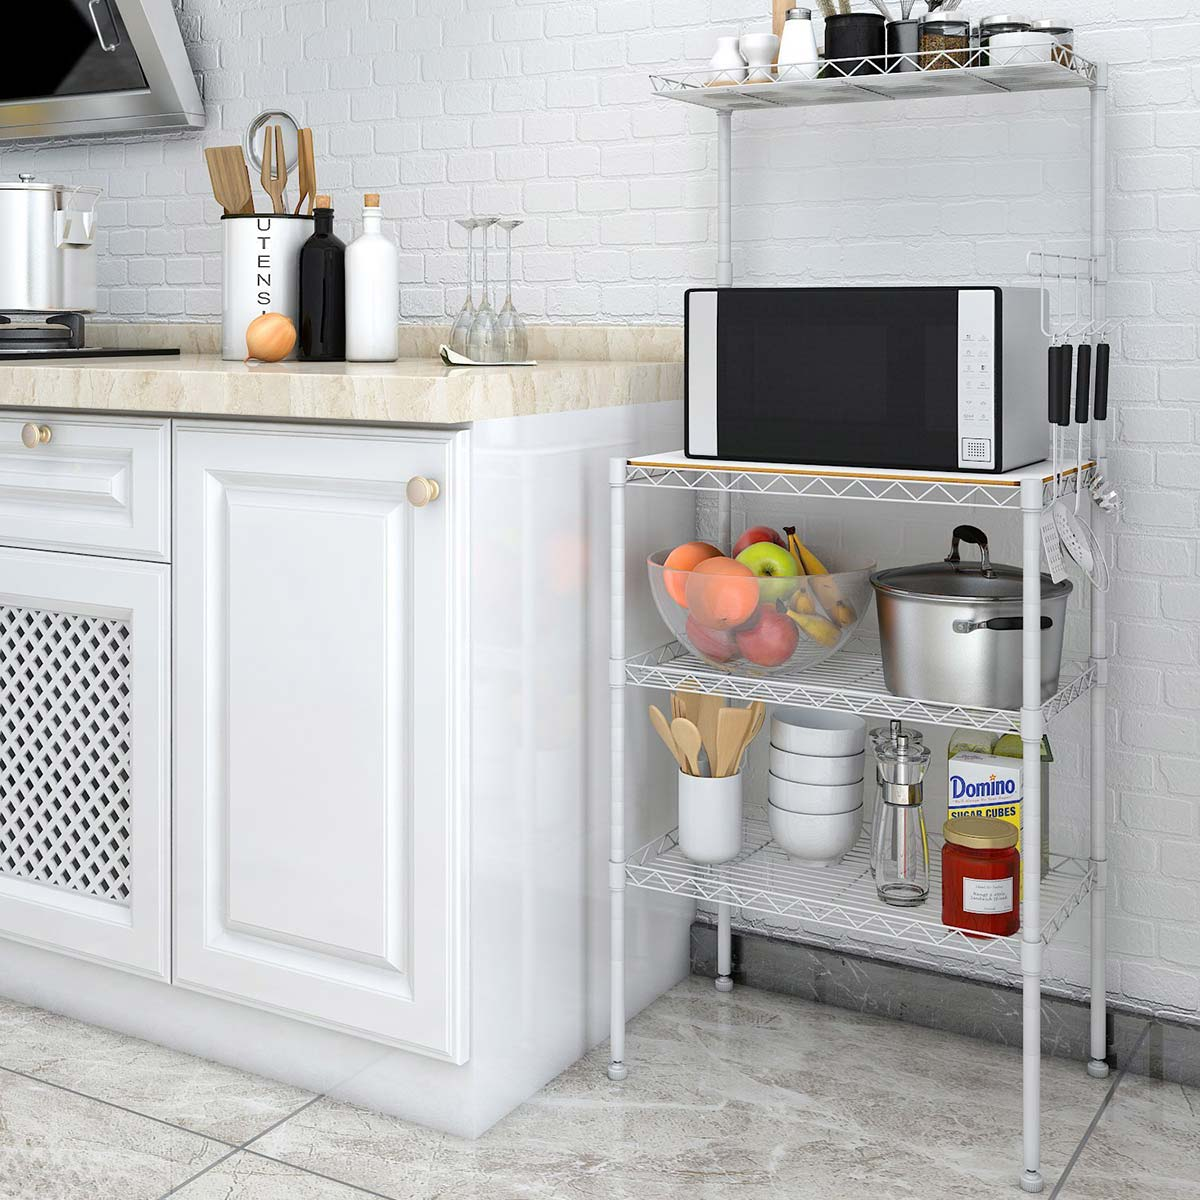 Best Microwave Stand With Storage For Your Kitchen